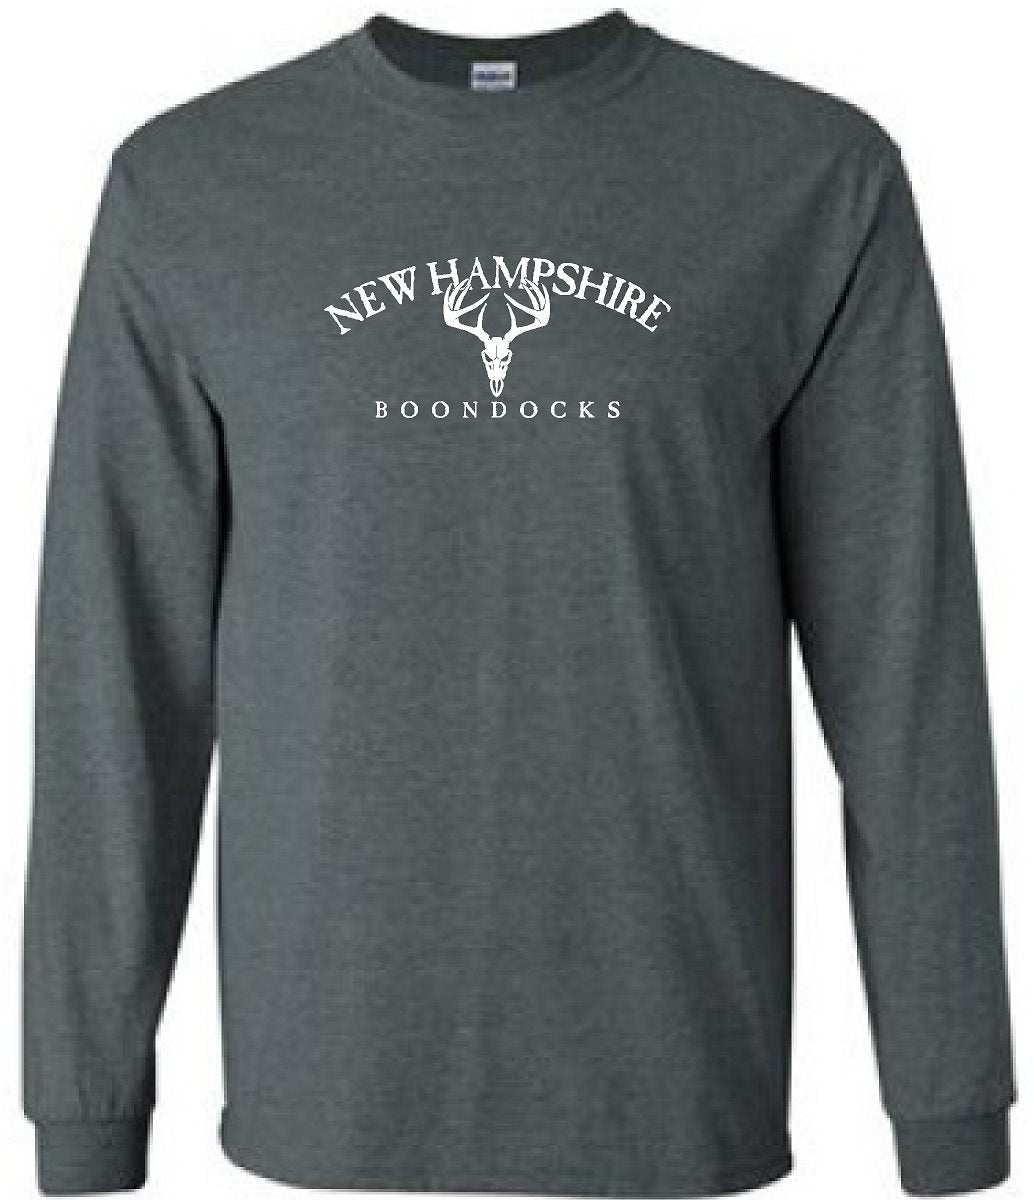 NEW HAMPSHIRE BOONDOCKS WITH DEER SKULL - CREW NECK SWEATSHIRTS